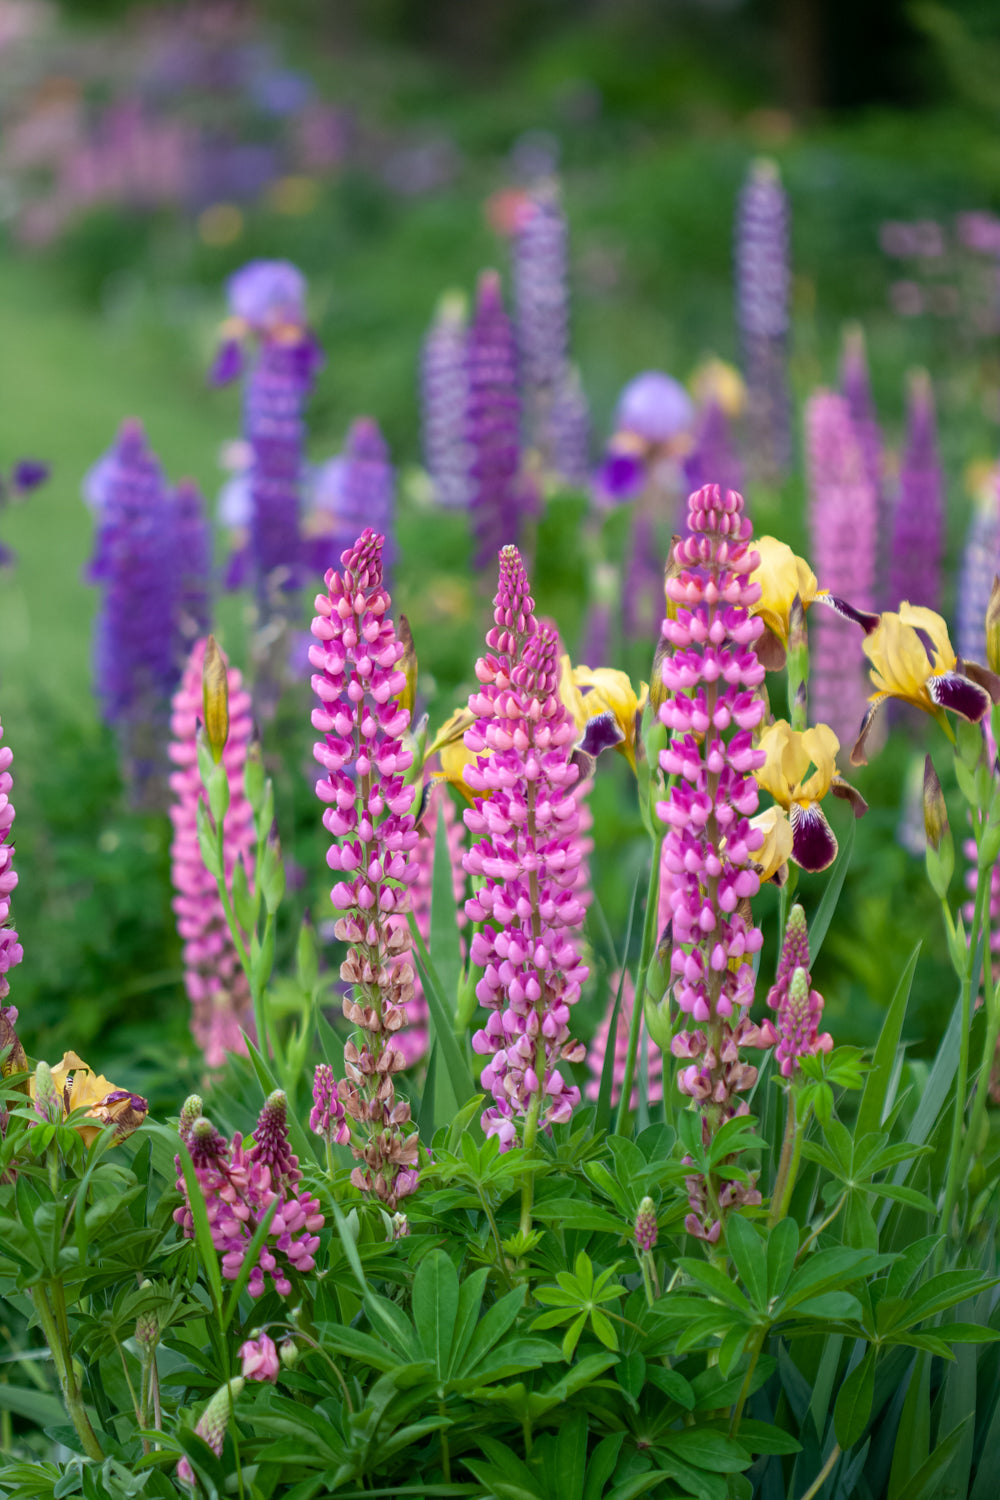 A close up photograph of pink lupines in the foreground with yellow bearded irises behind them and in the back ground blurry lupines photography by Laura Cook